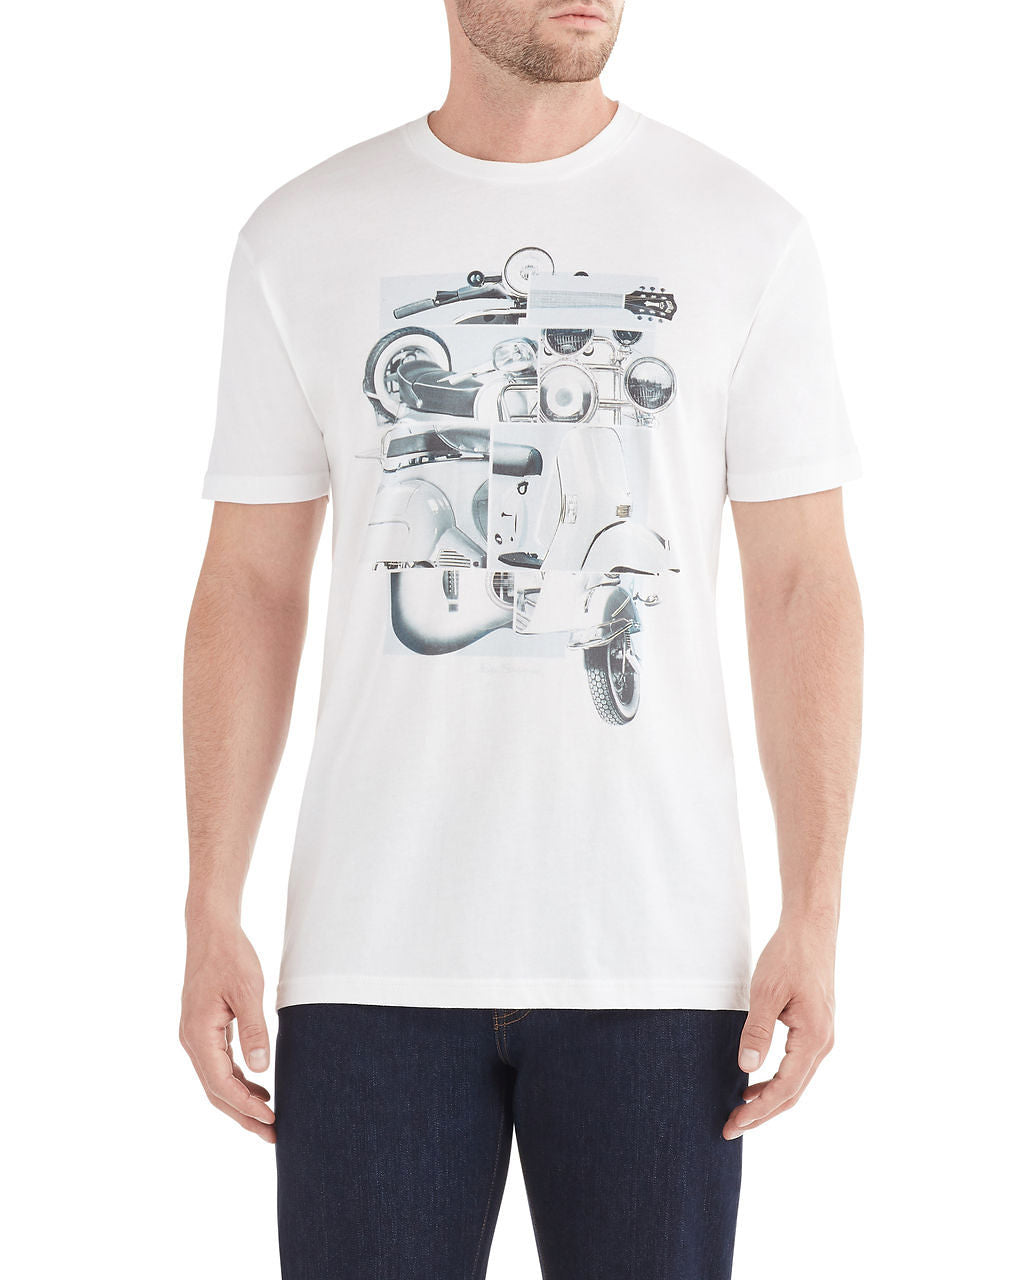 Panels Graphic T-Shirt - White